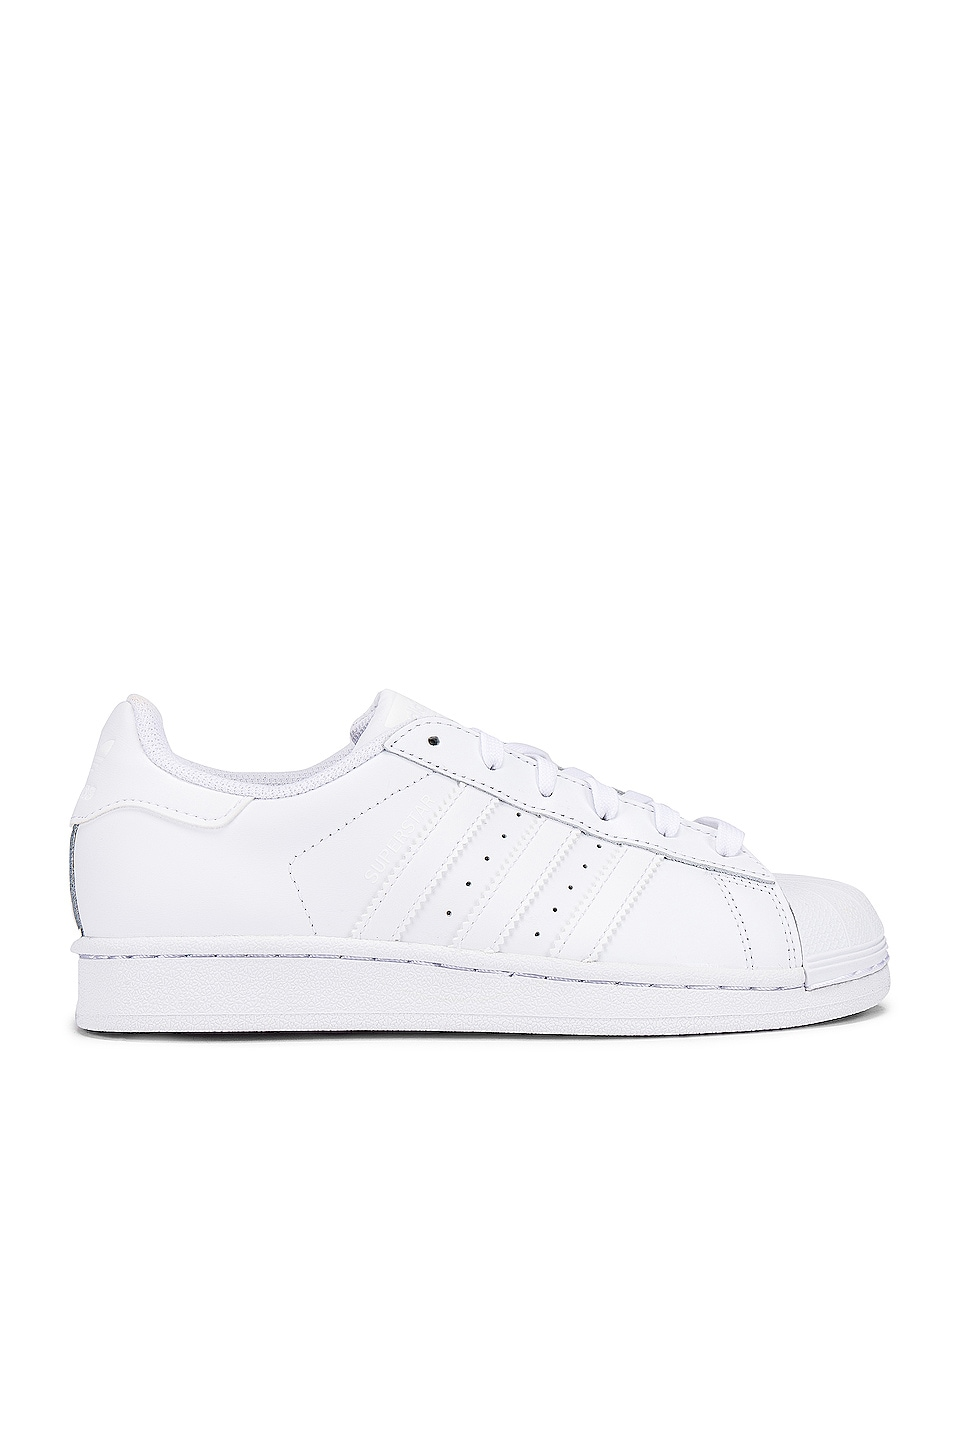 adidas Originals Superstar Foundation Sneaker in White